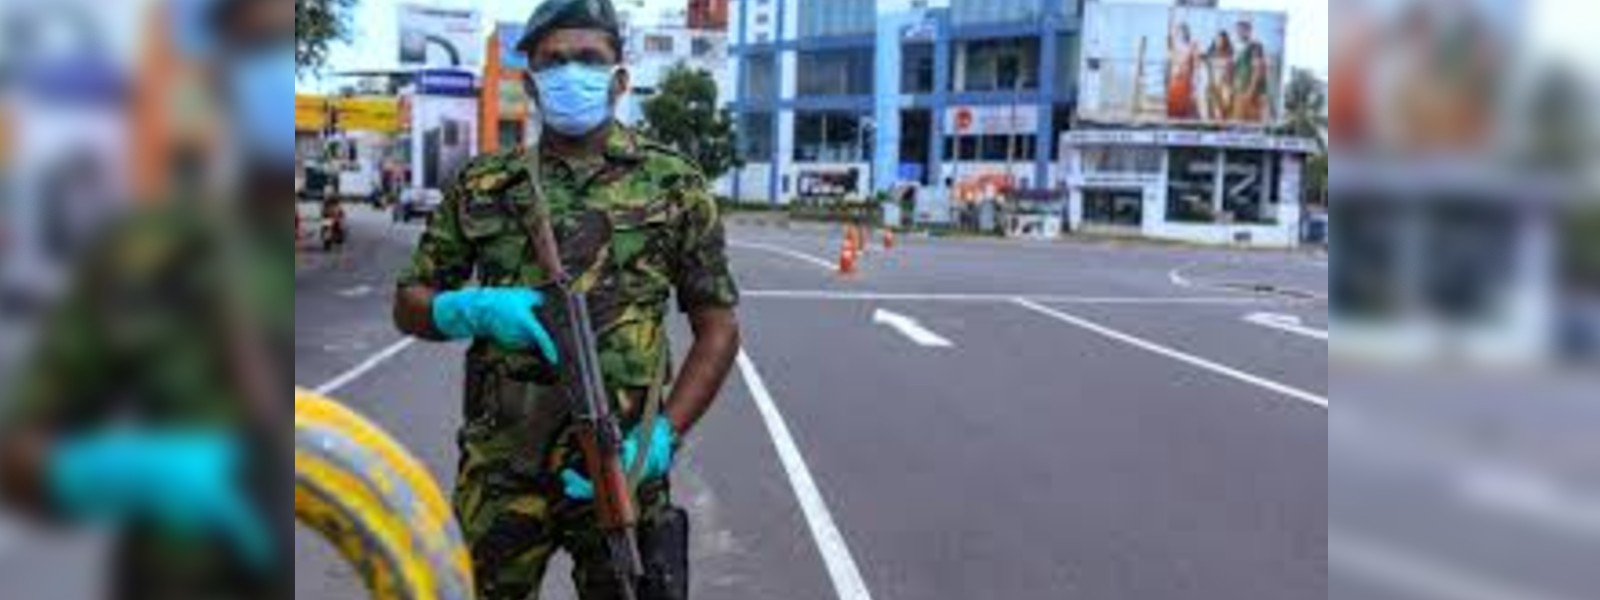 No curfew passes issued by Police: Spokesperson